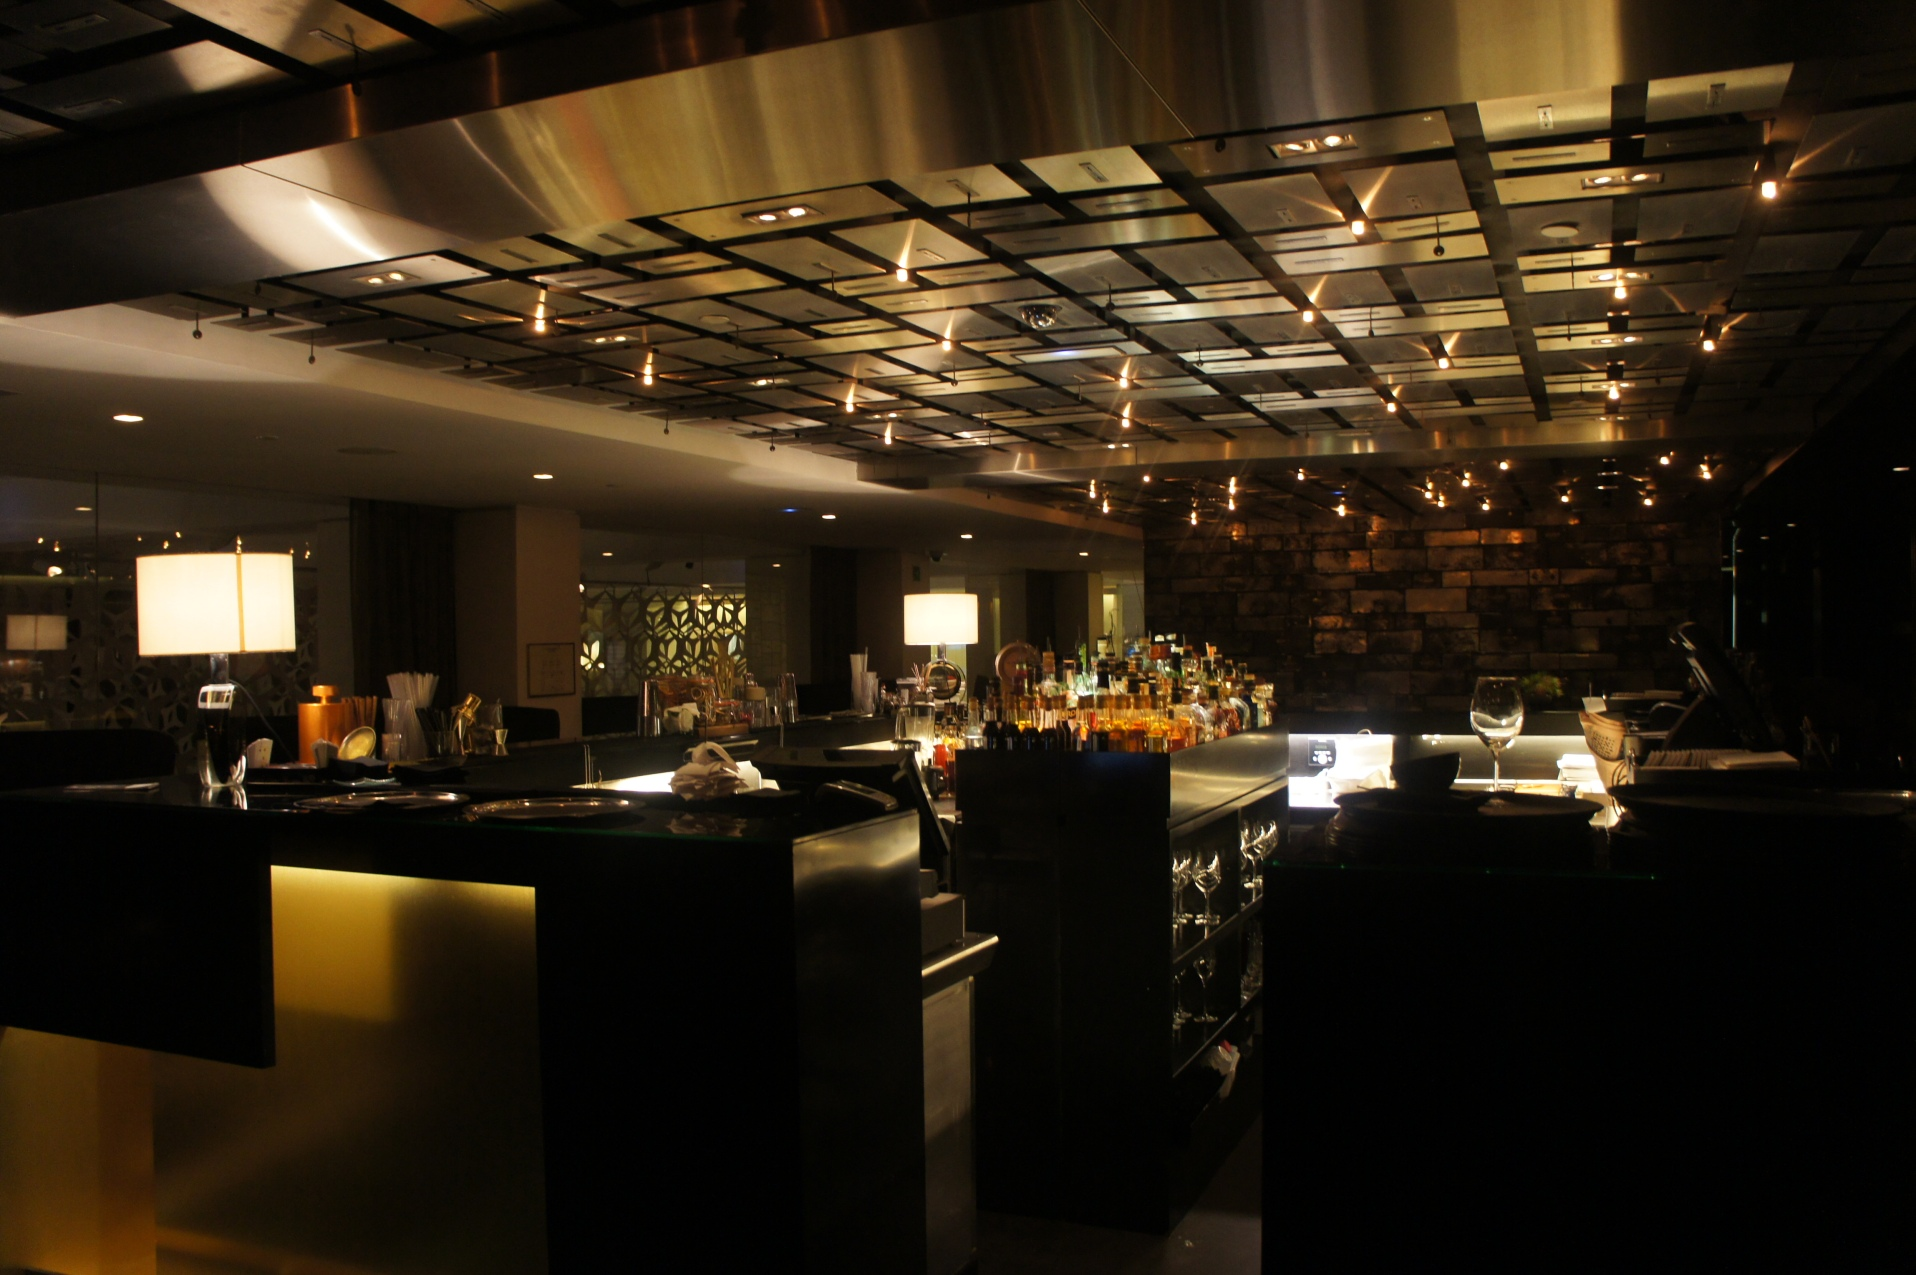 Interiors of the Mandarin Oriental Hotel Bar